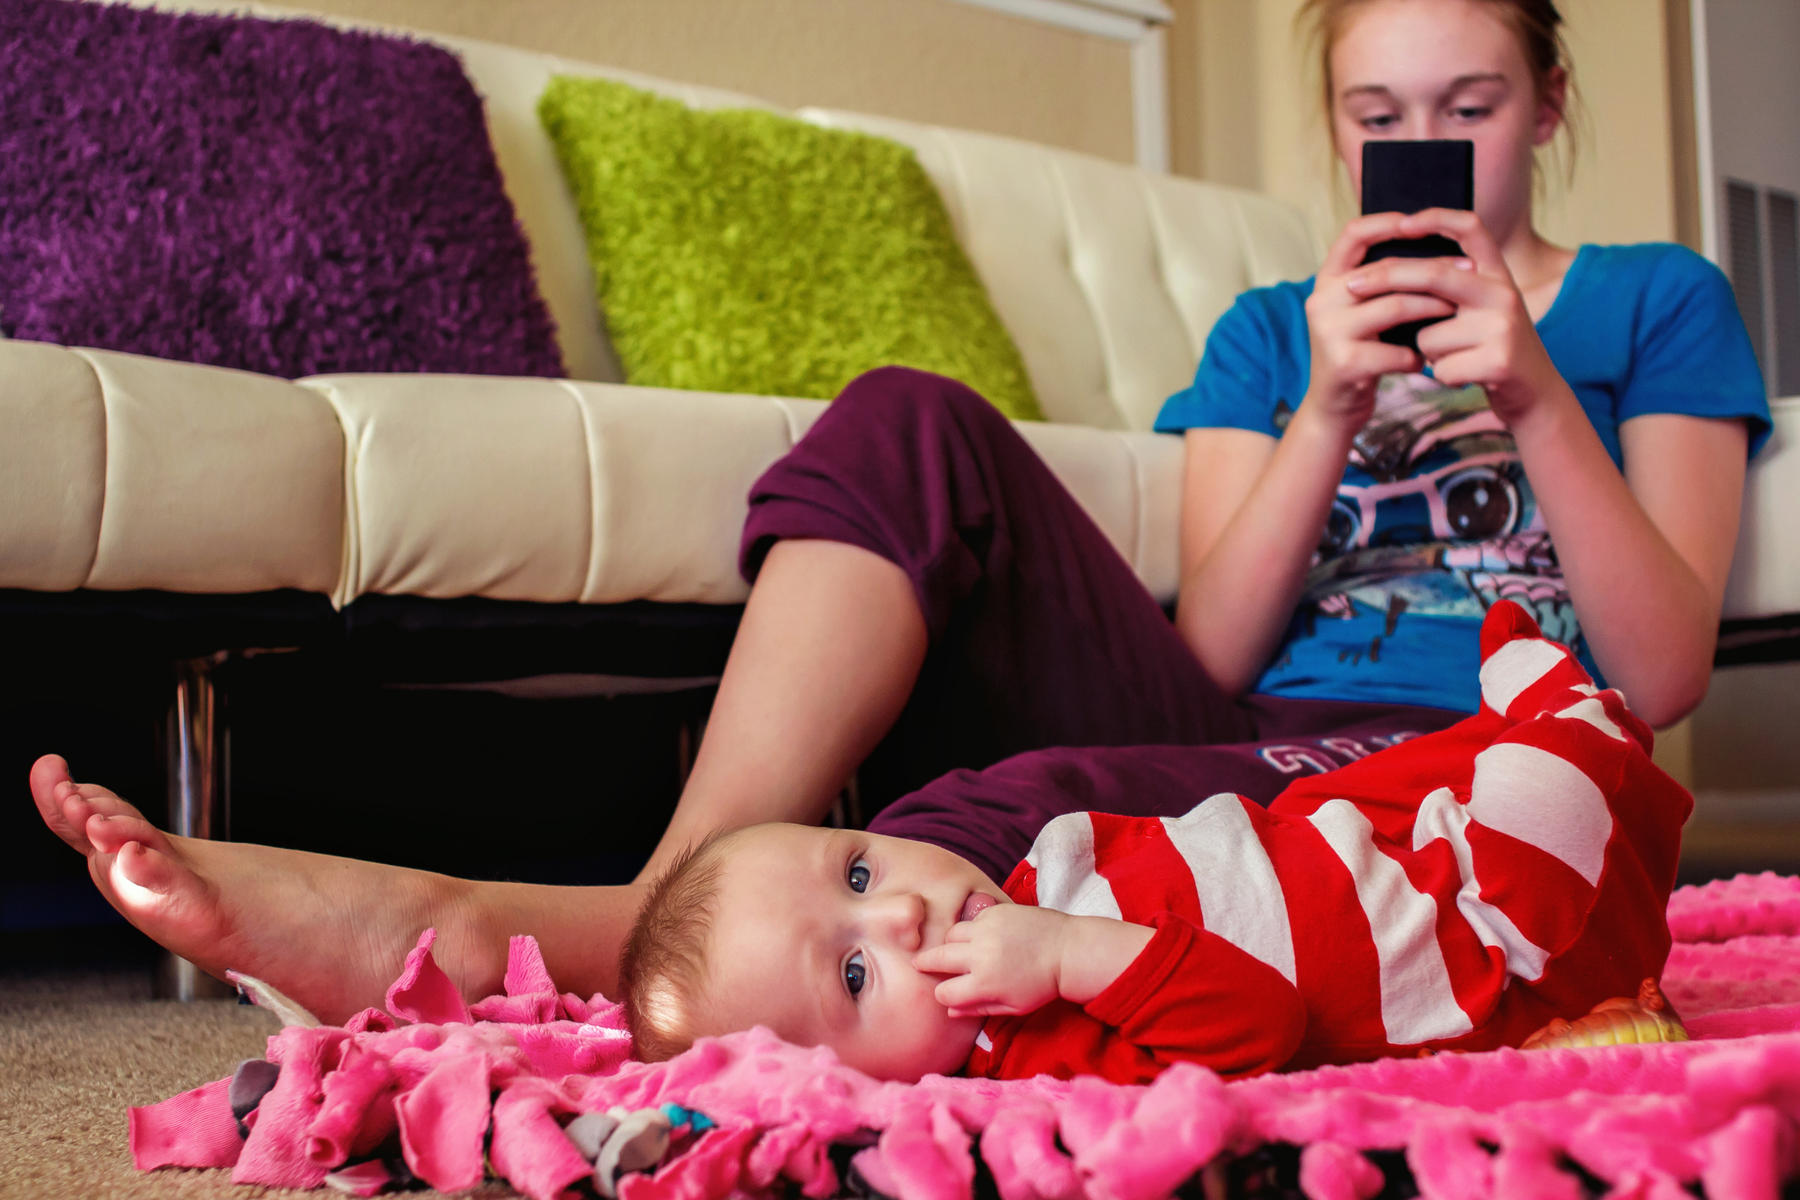 Preoccupied Babysitter Looking at Phone